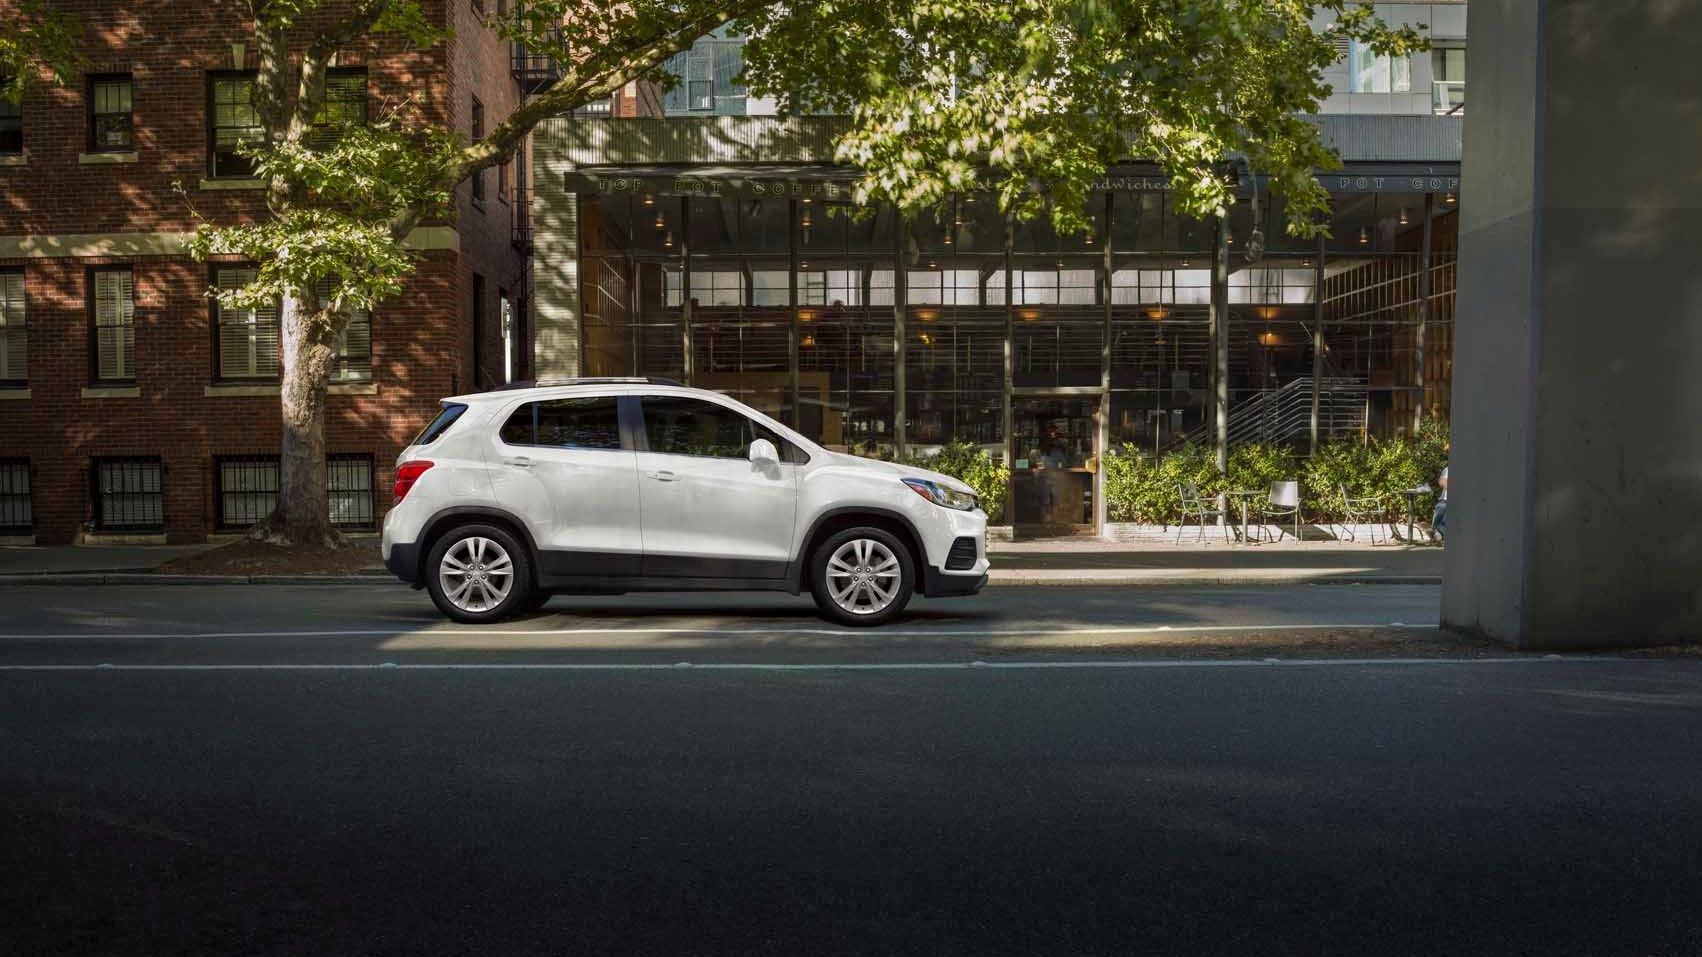 2021 chevrolet trax review ratings mpg and prices